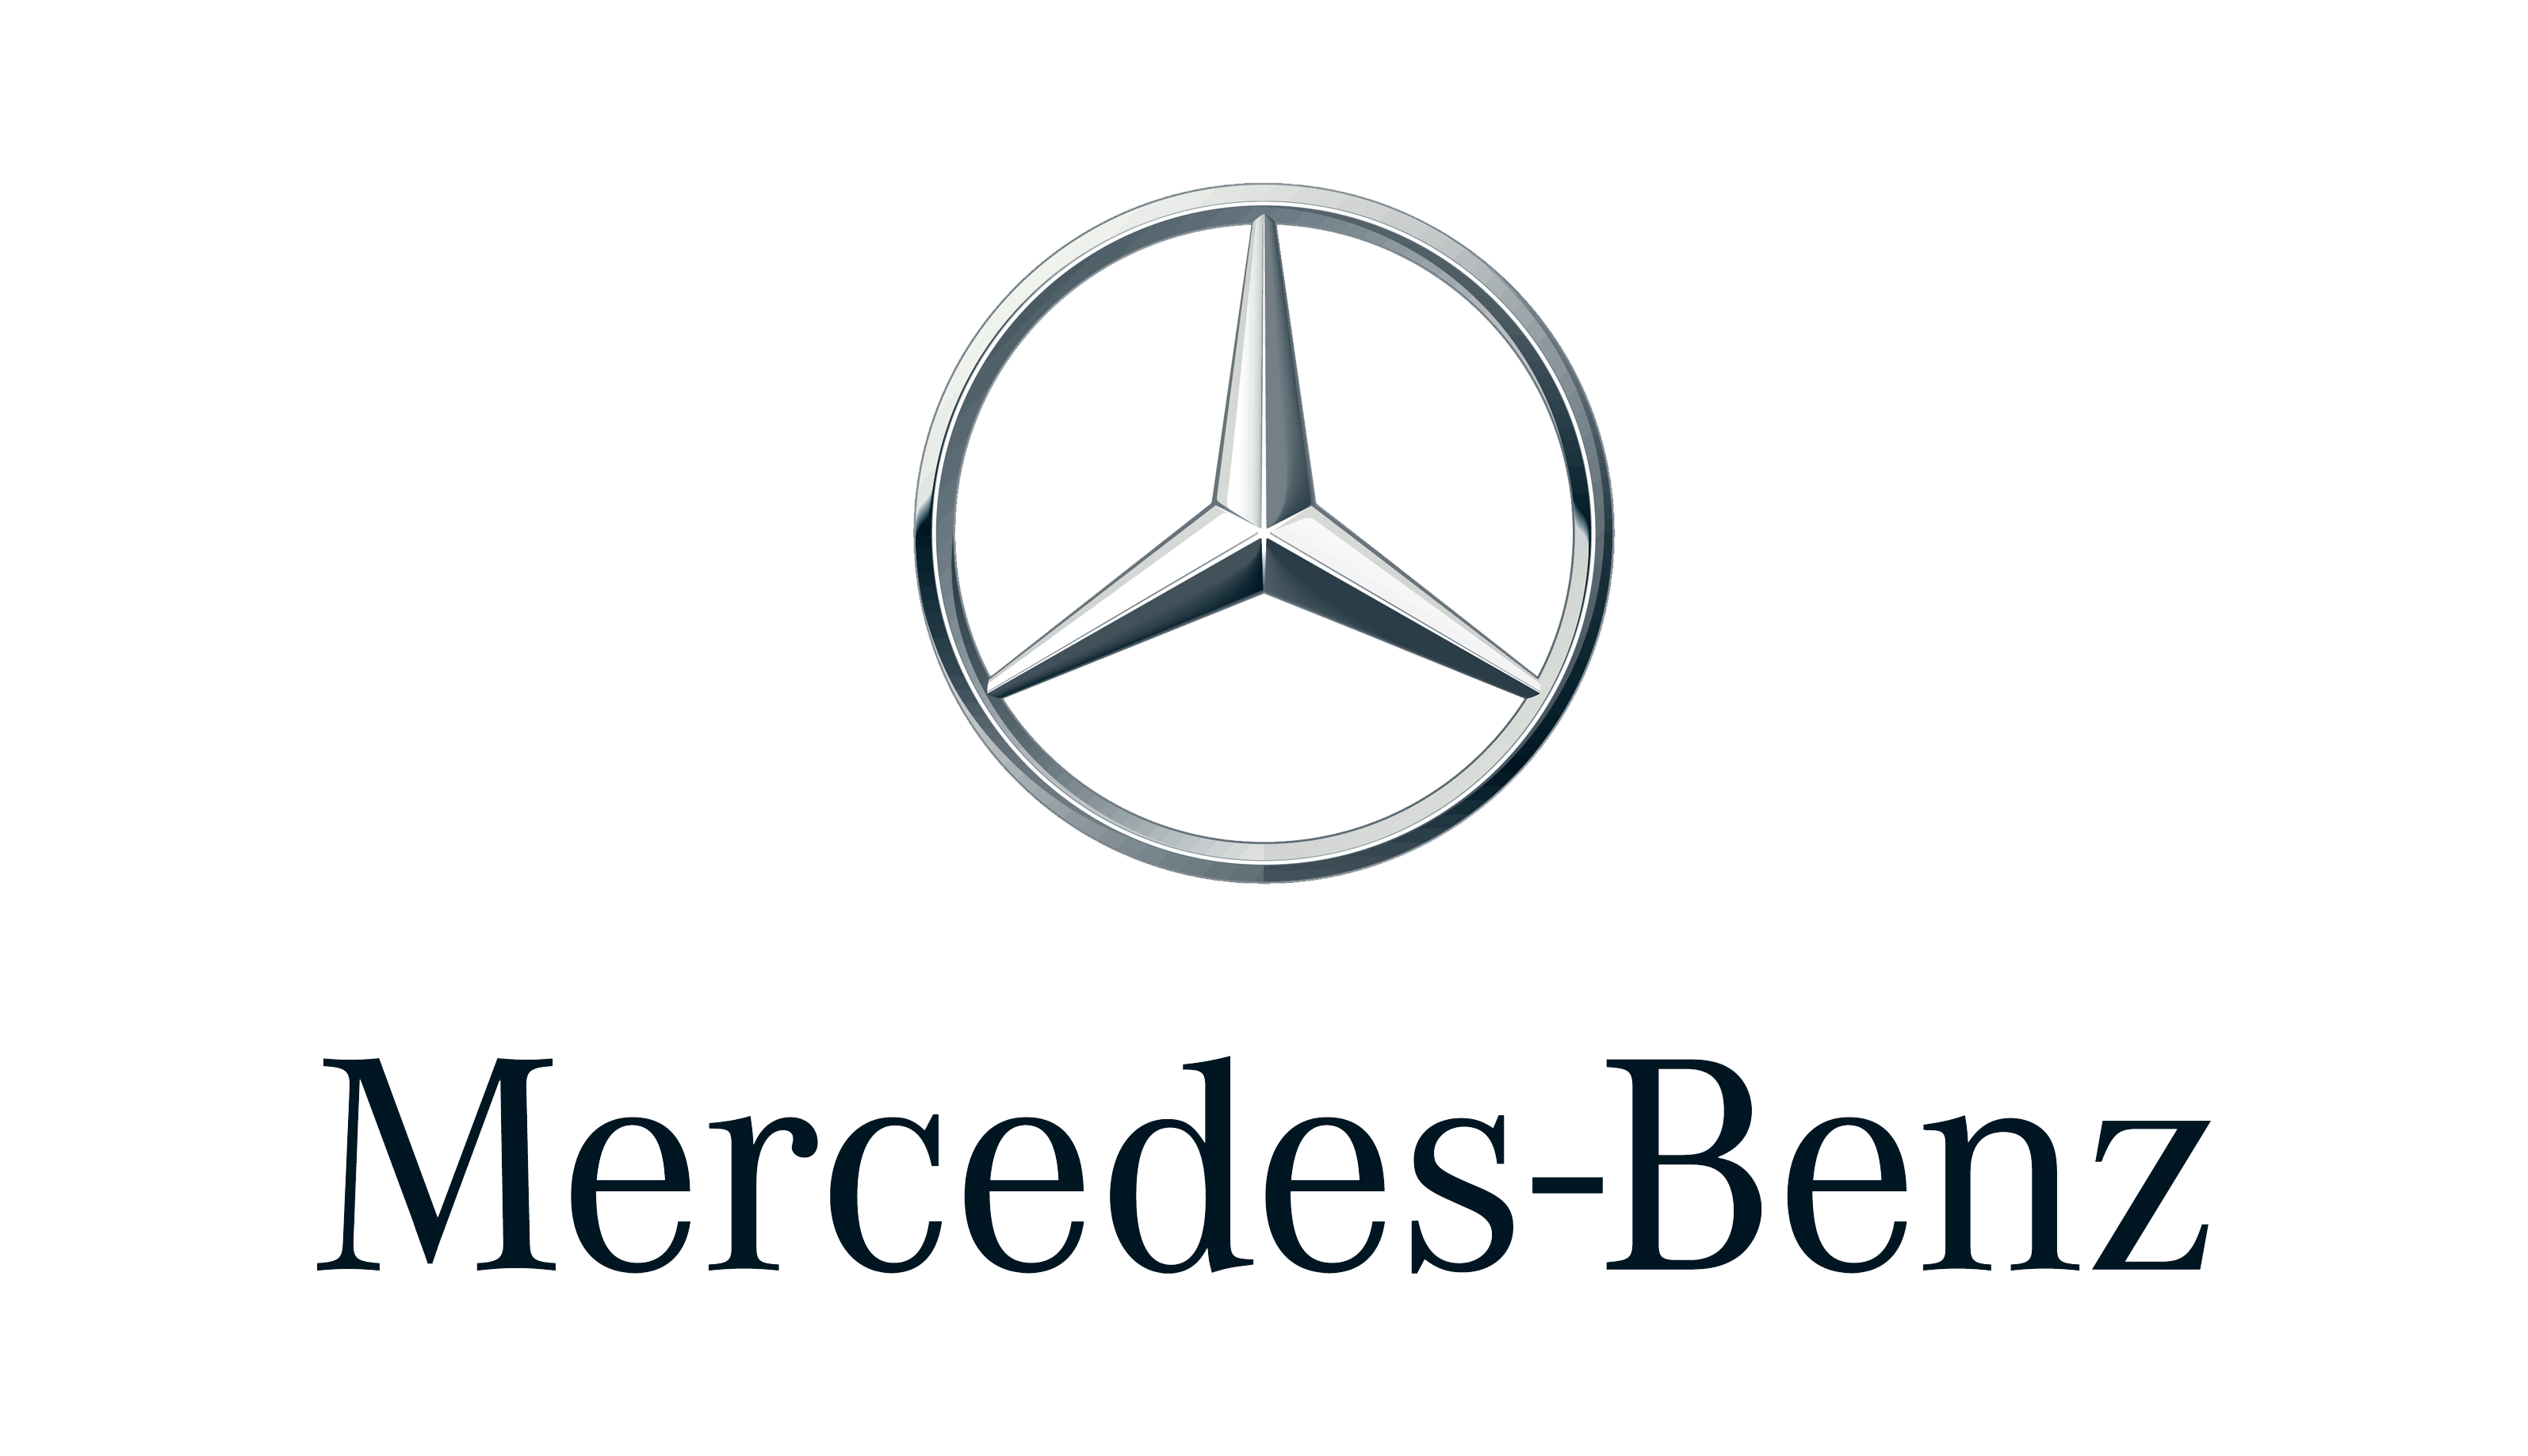 Mercedes benz logo logok for Mercedes benz brand